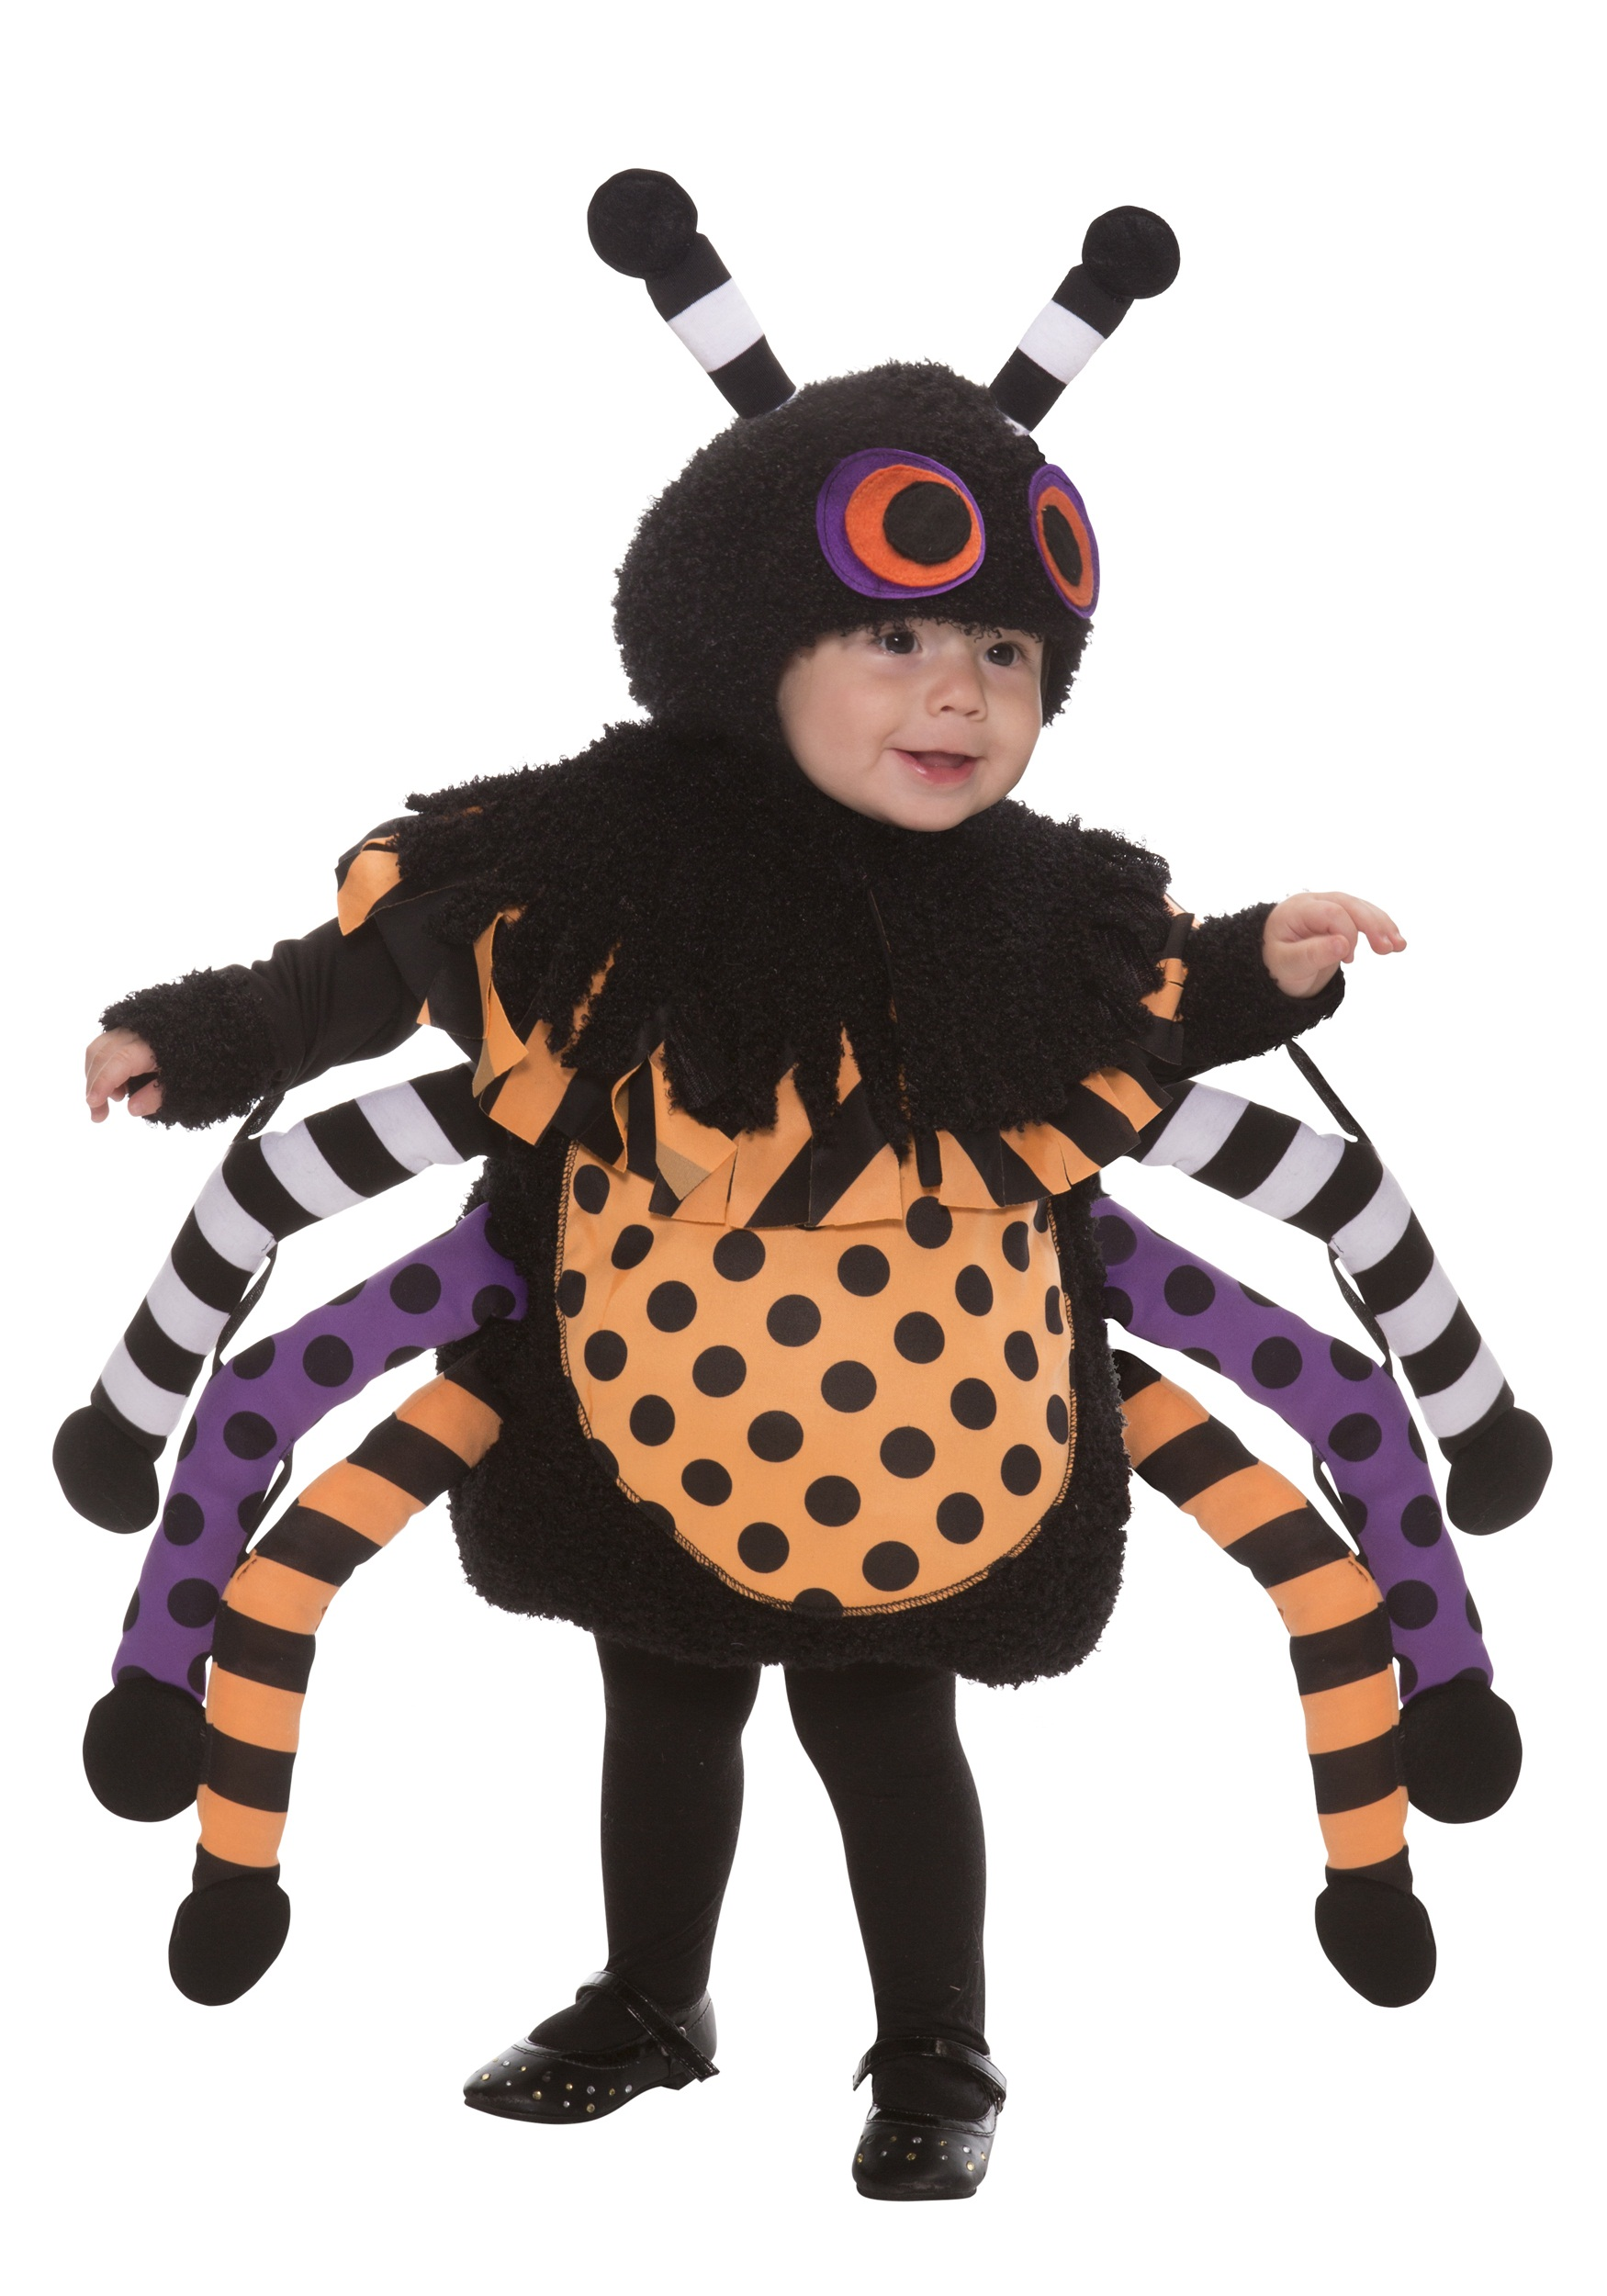 Toddler Polka Dot Spider Costume  sc 1 st  Halloween Costumes : spider halloween costumes  - Germanpascual.Com